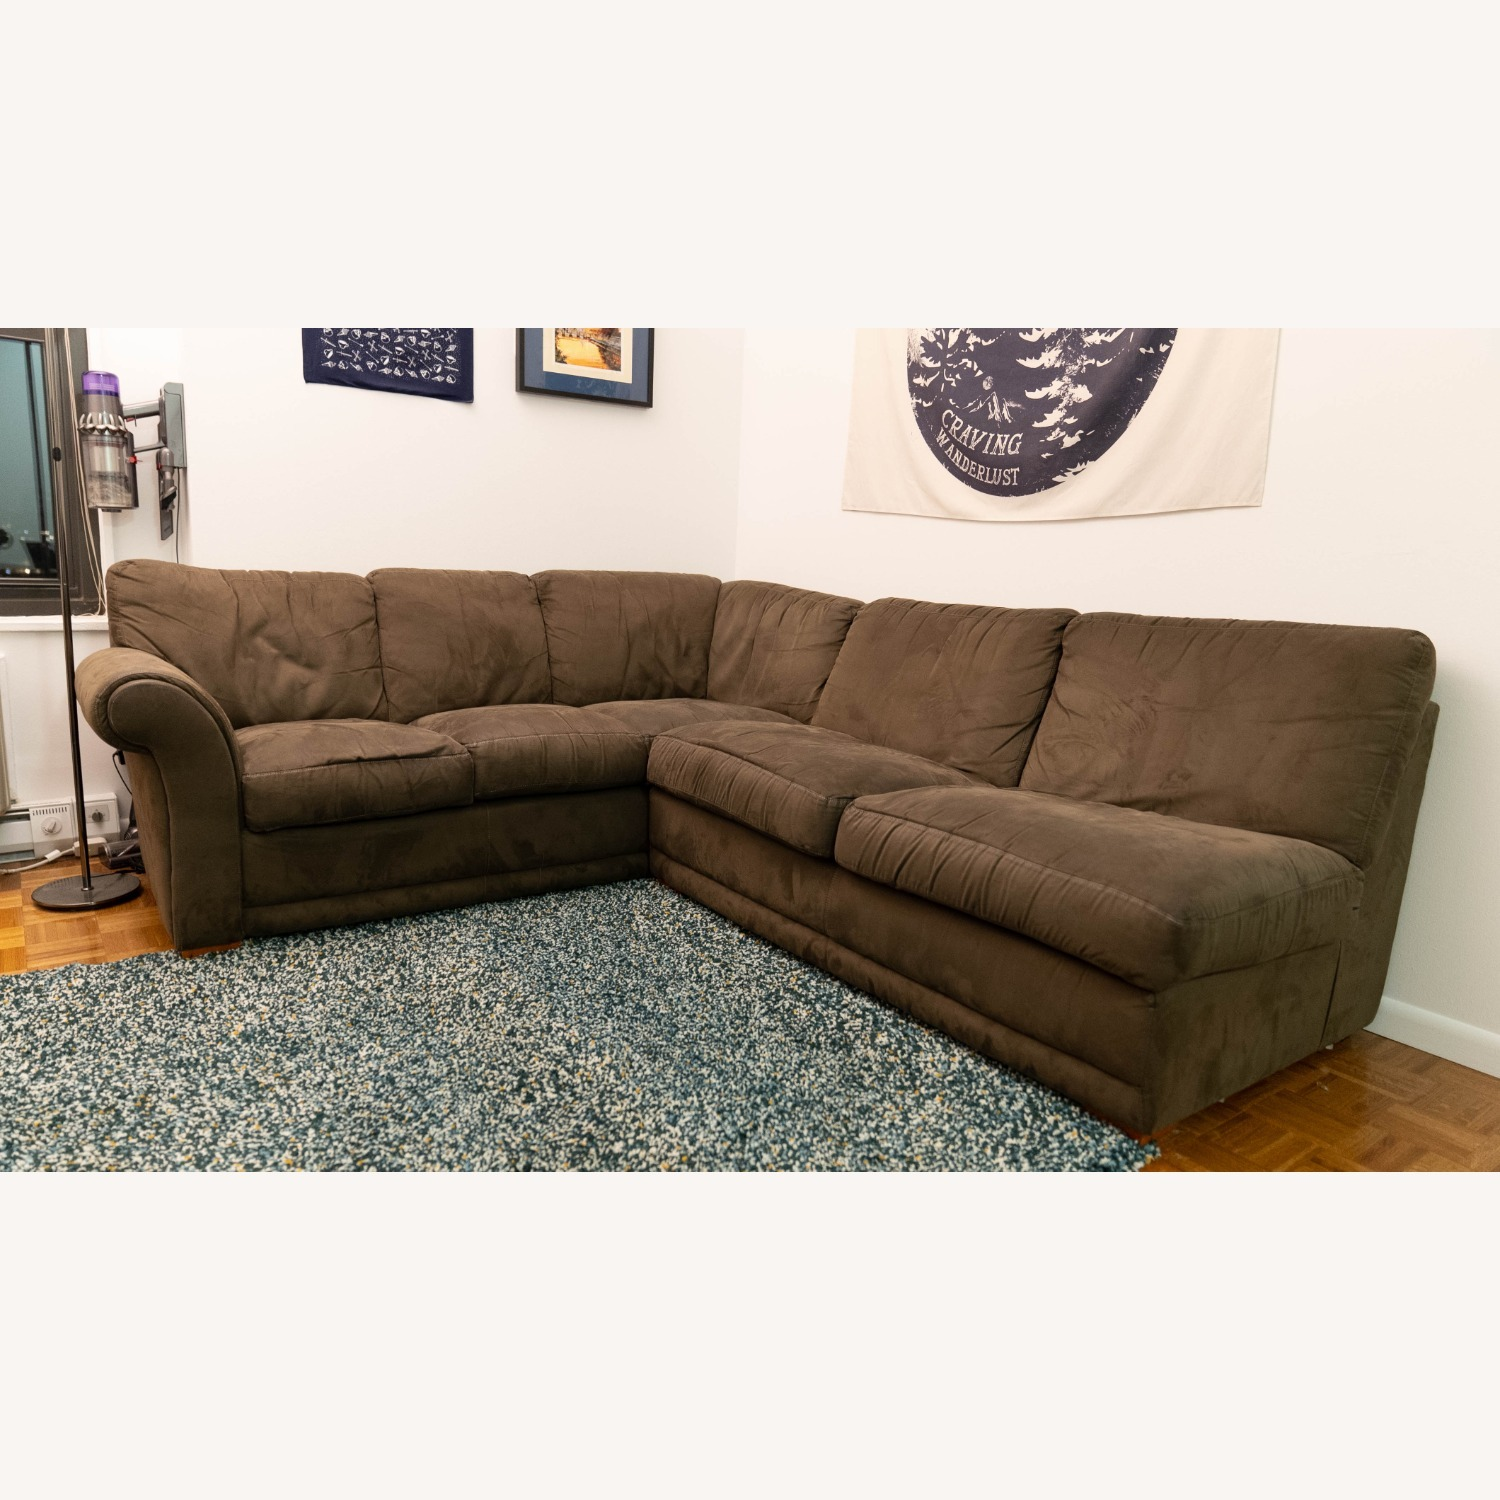 Super Comfortable Sectional Couch - image-1